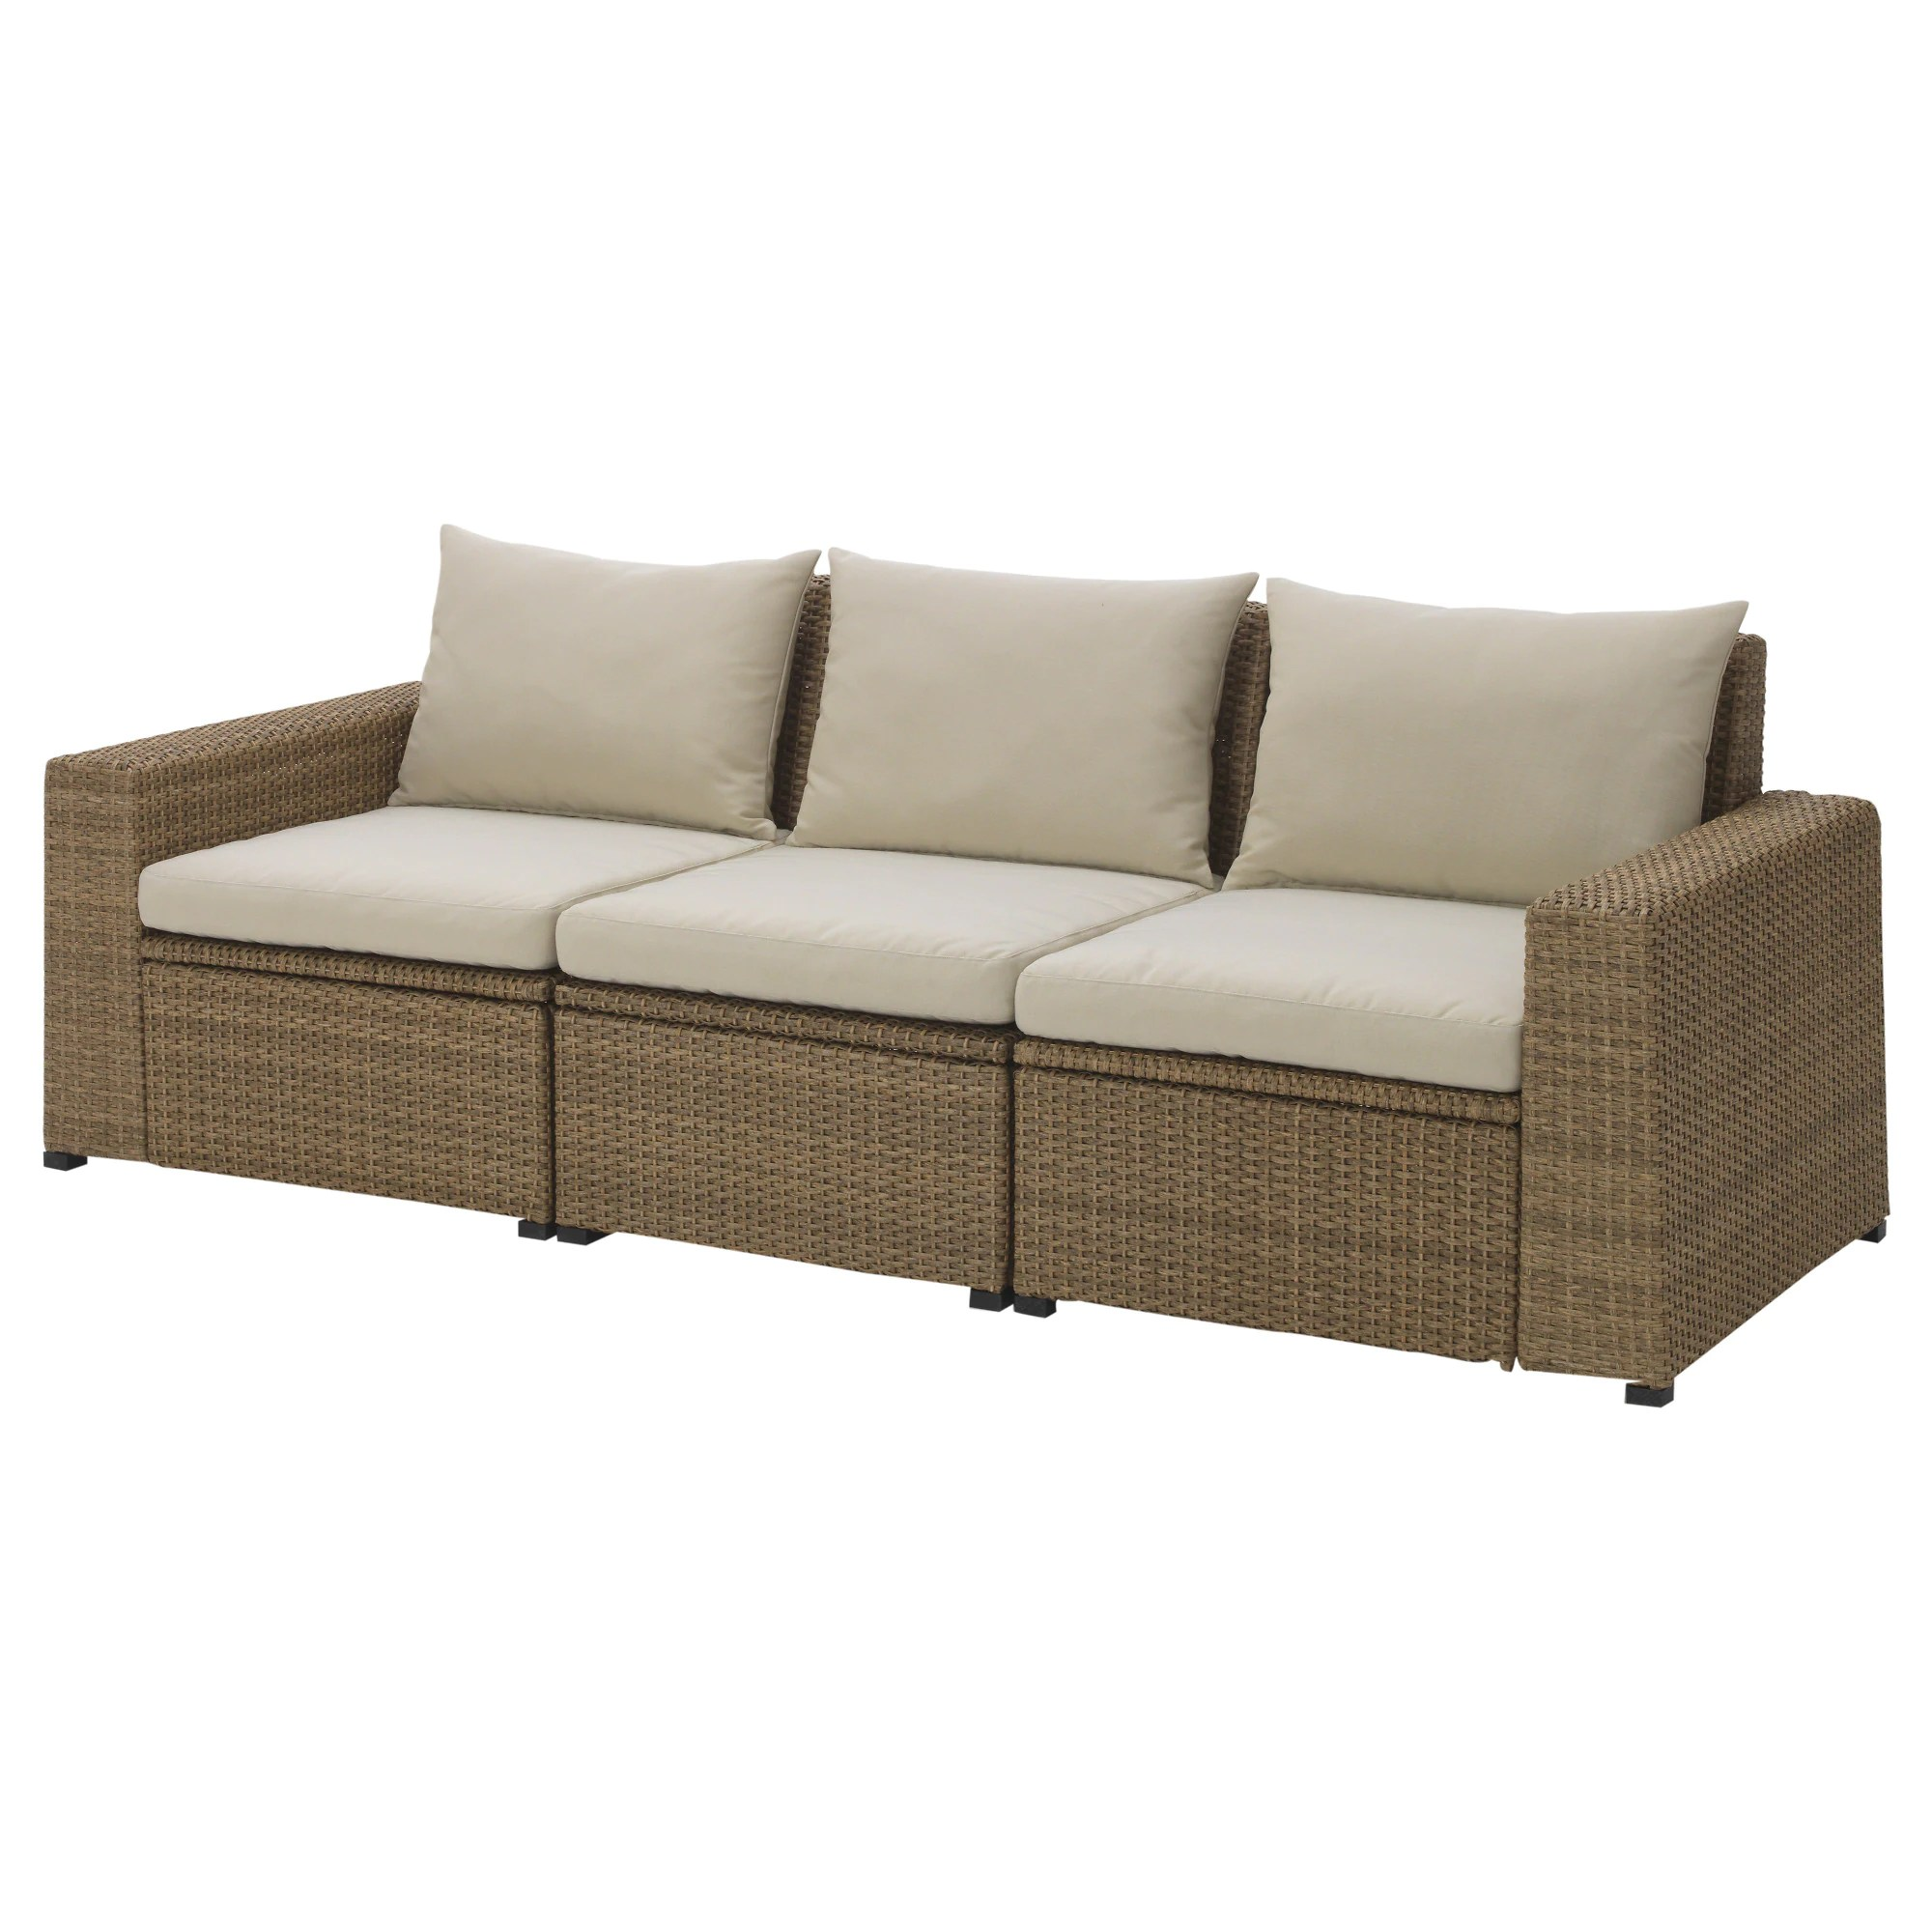 Cheap Modular Lounges SollerÖn 3 Seat Modular Sofa Outdoor Brown Hållö Beige